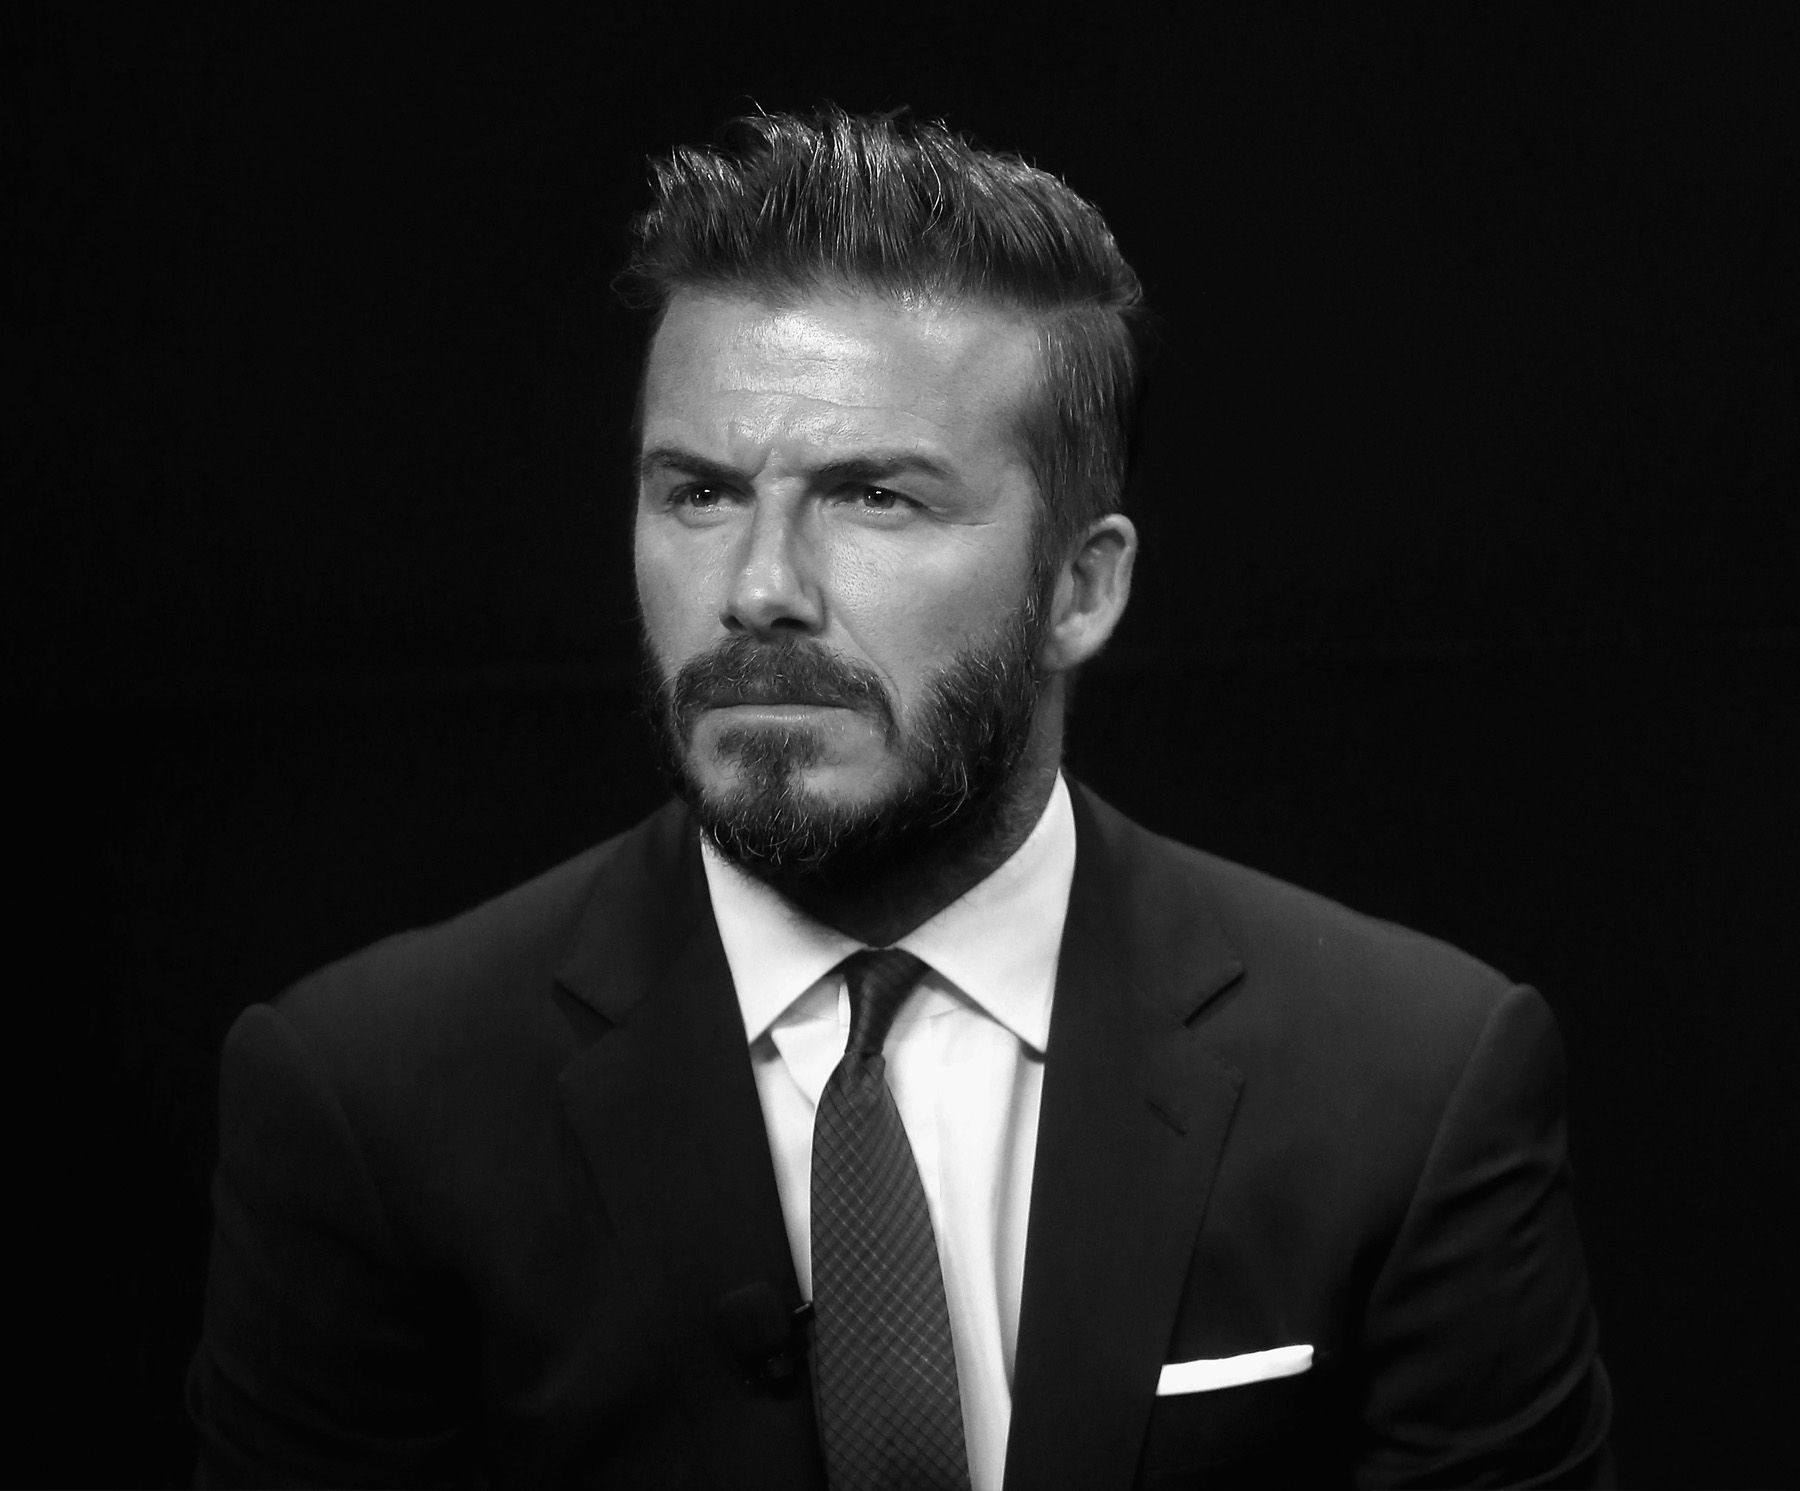 david beckham styledavid beckham classic, david beckham instinct, david beckham 2016, david beckham 2017, david beckham style, david beckham classic blue, david beckham instagram, david beckham haircut, david beckham википедия, david beckham the essence, david beckham tattoo, david beckham духи, david beckham parfum, david beckham beyond, david beckham real madrid, david beckham wiki, david beckham фото, david beckham son, david beckham hair, david beckham h&m